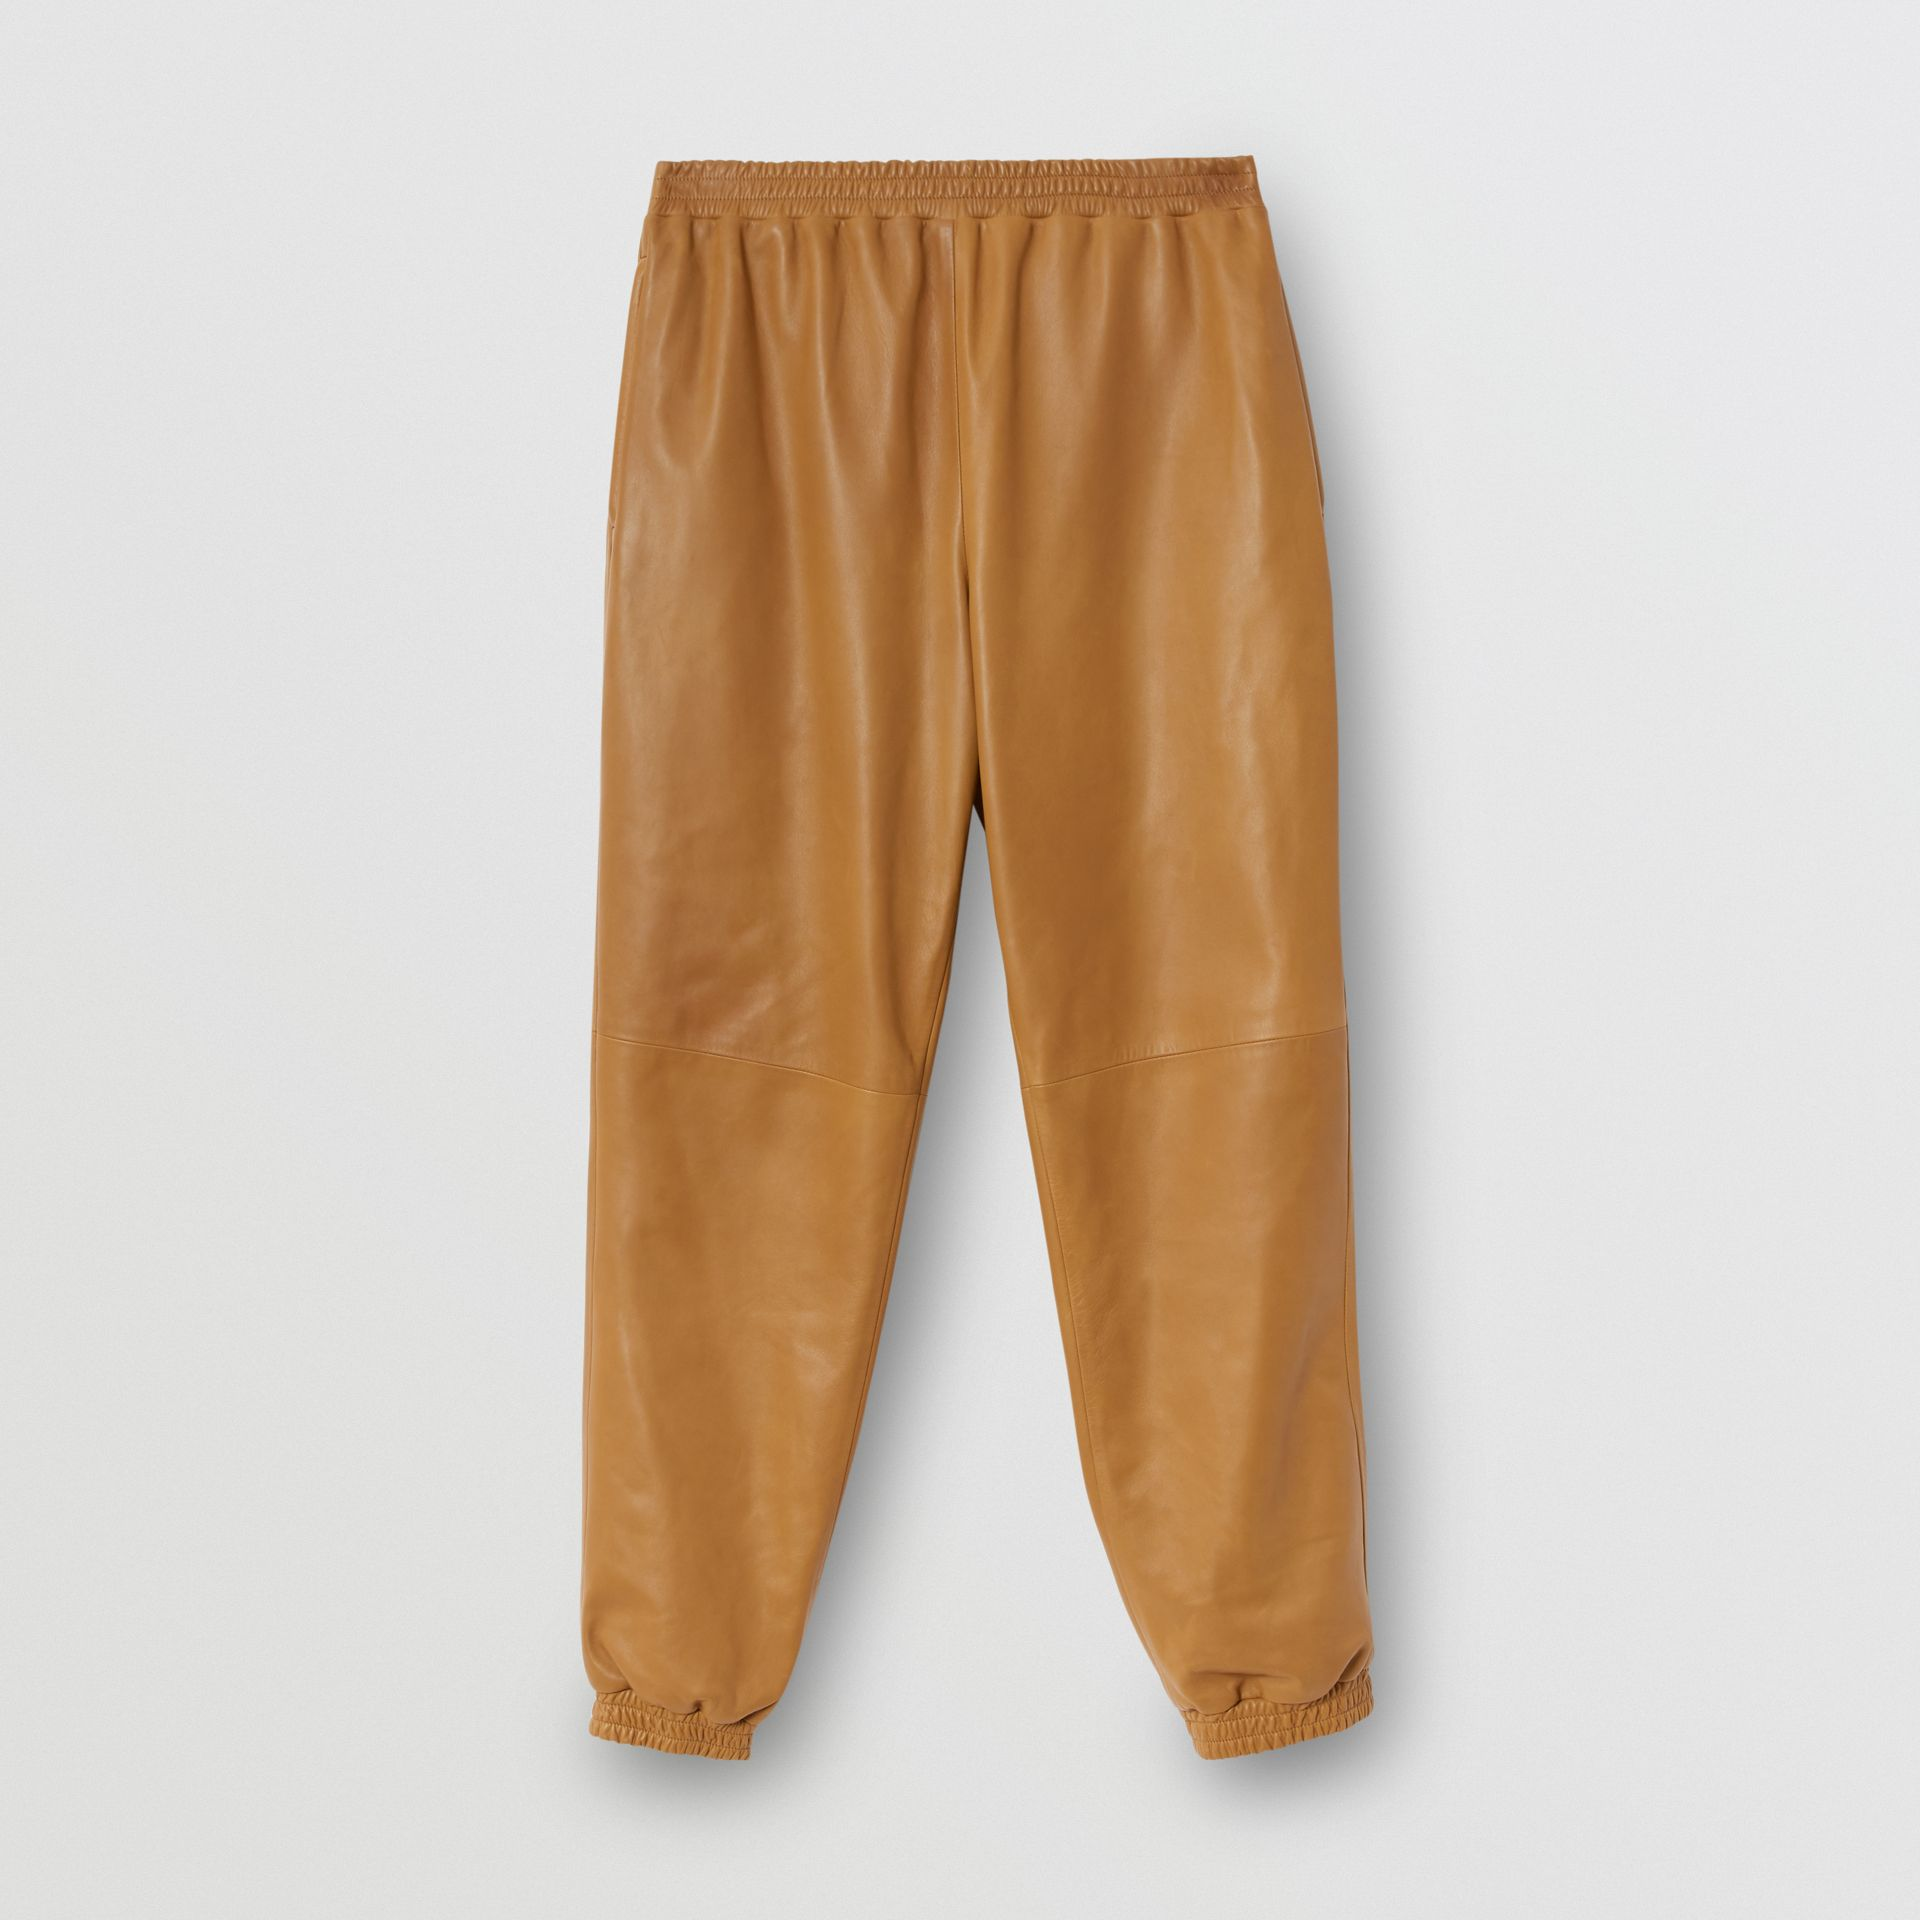 Plonge Lambskin Trackpants in Warm Walnut - Men | Burberry Hong Kong S.A.R - gallery image 3